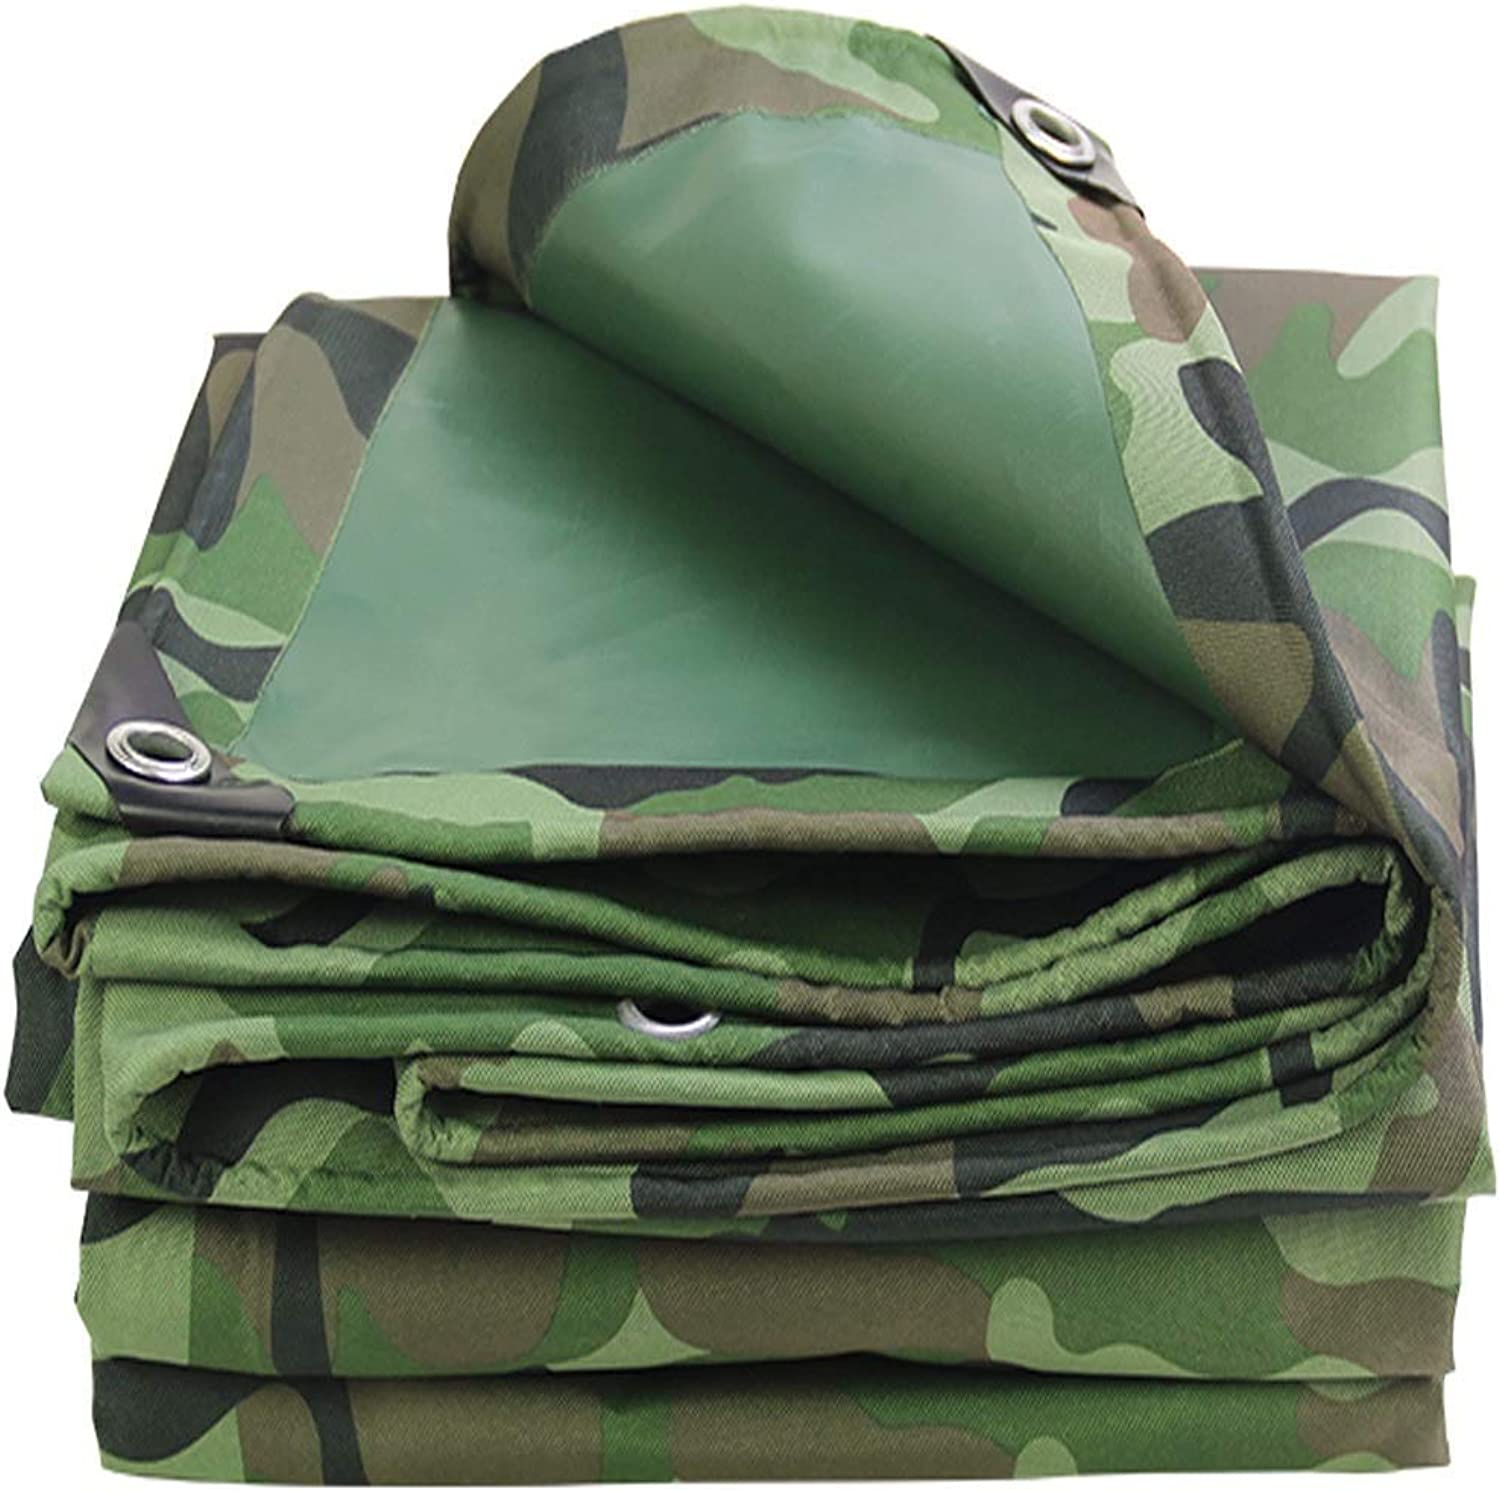 Outdoor Rainy Season Thick Double Waterproof Tarpaulin MultiFunction Predective Cloth MultiSize Optional (Size   3x3m)